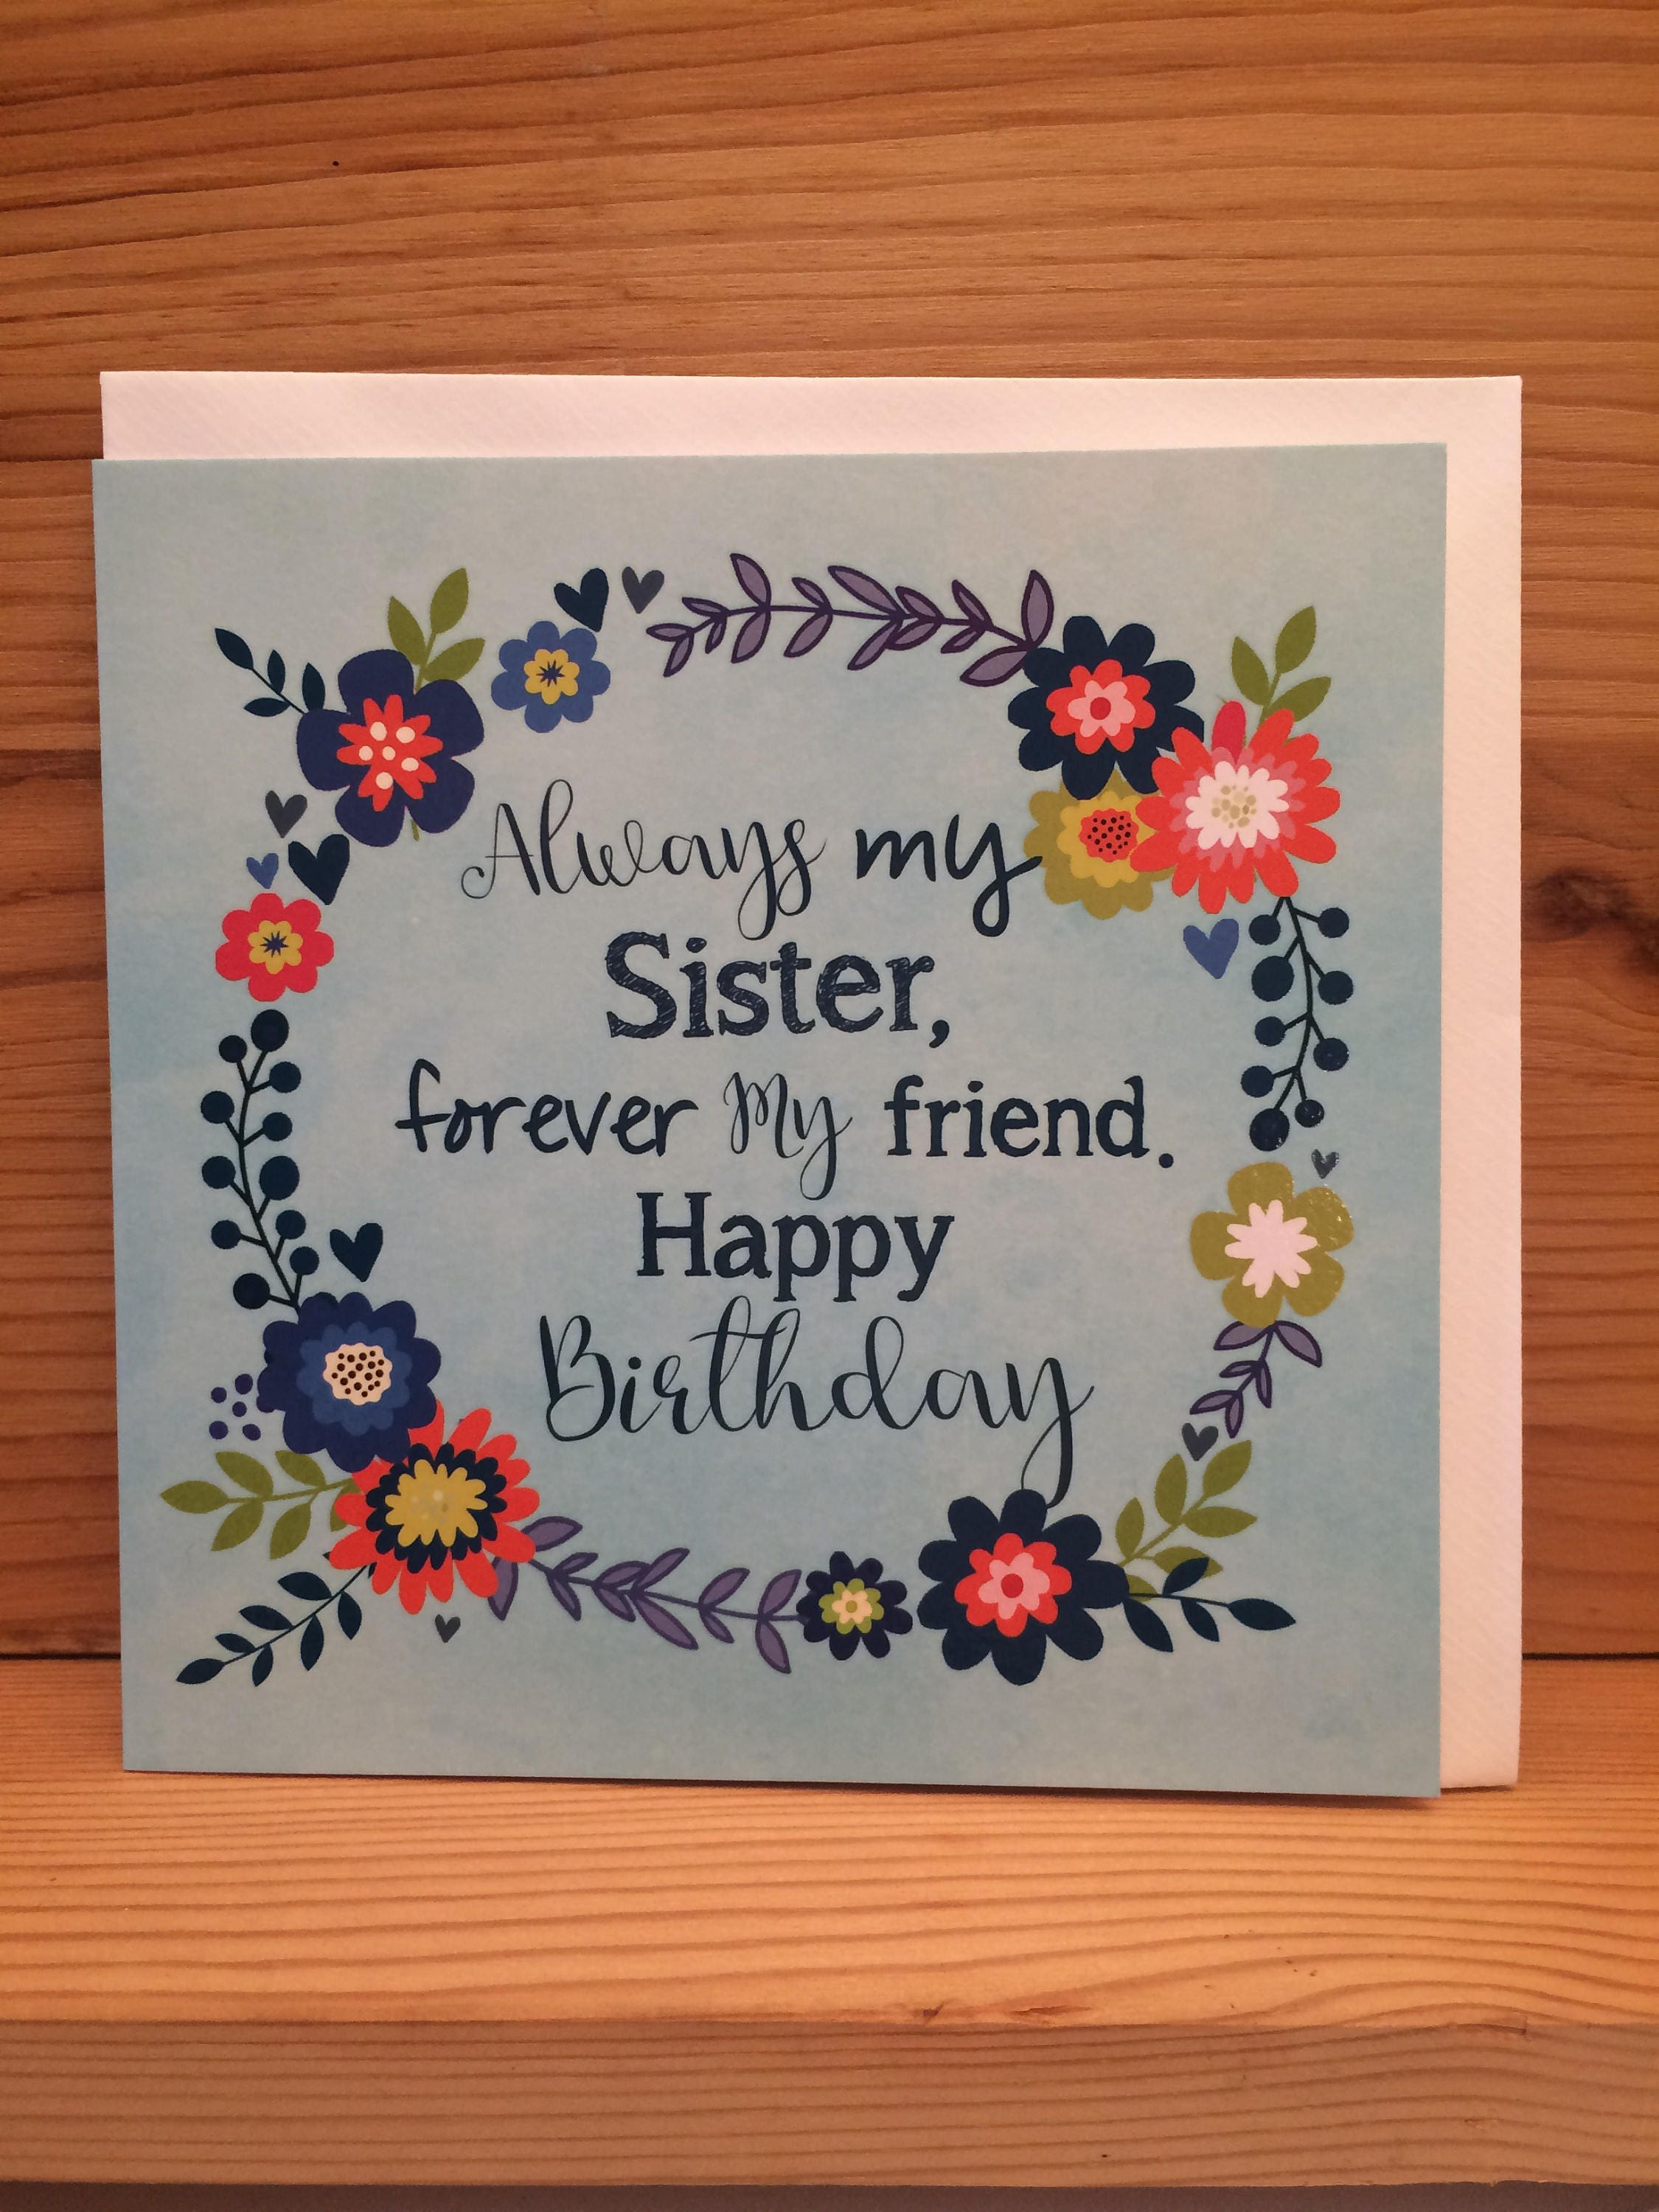 Sister Happy Birthday Card CardSister And Friend Flowersprettybest Sisterspot Varnish